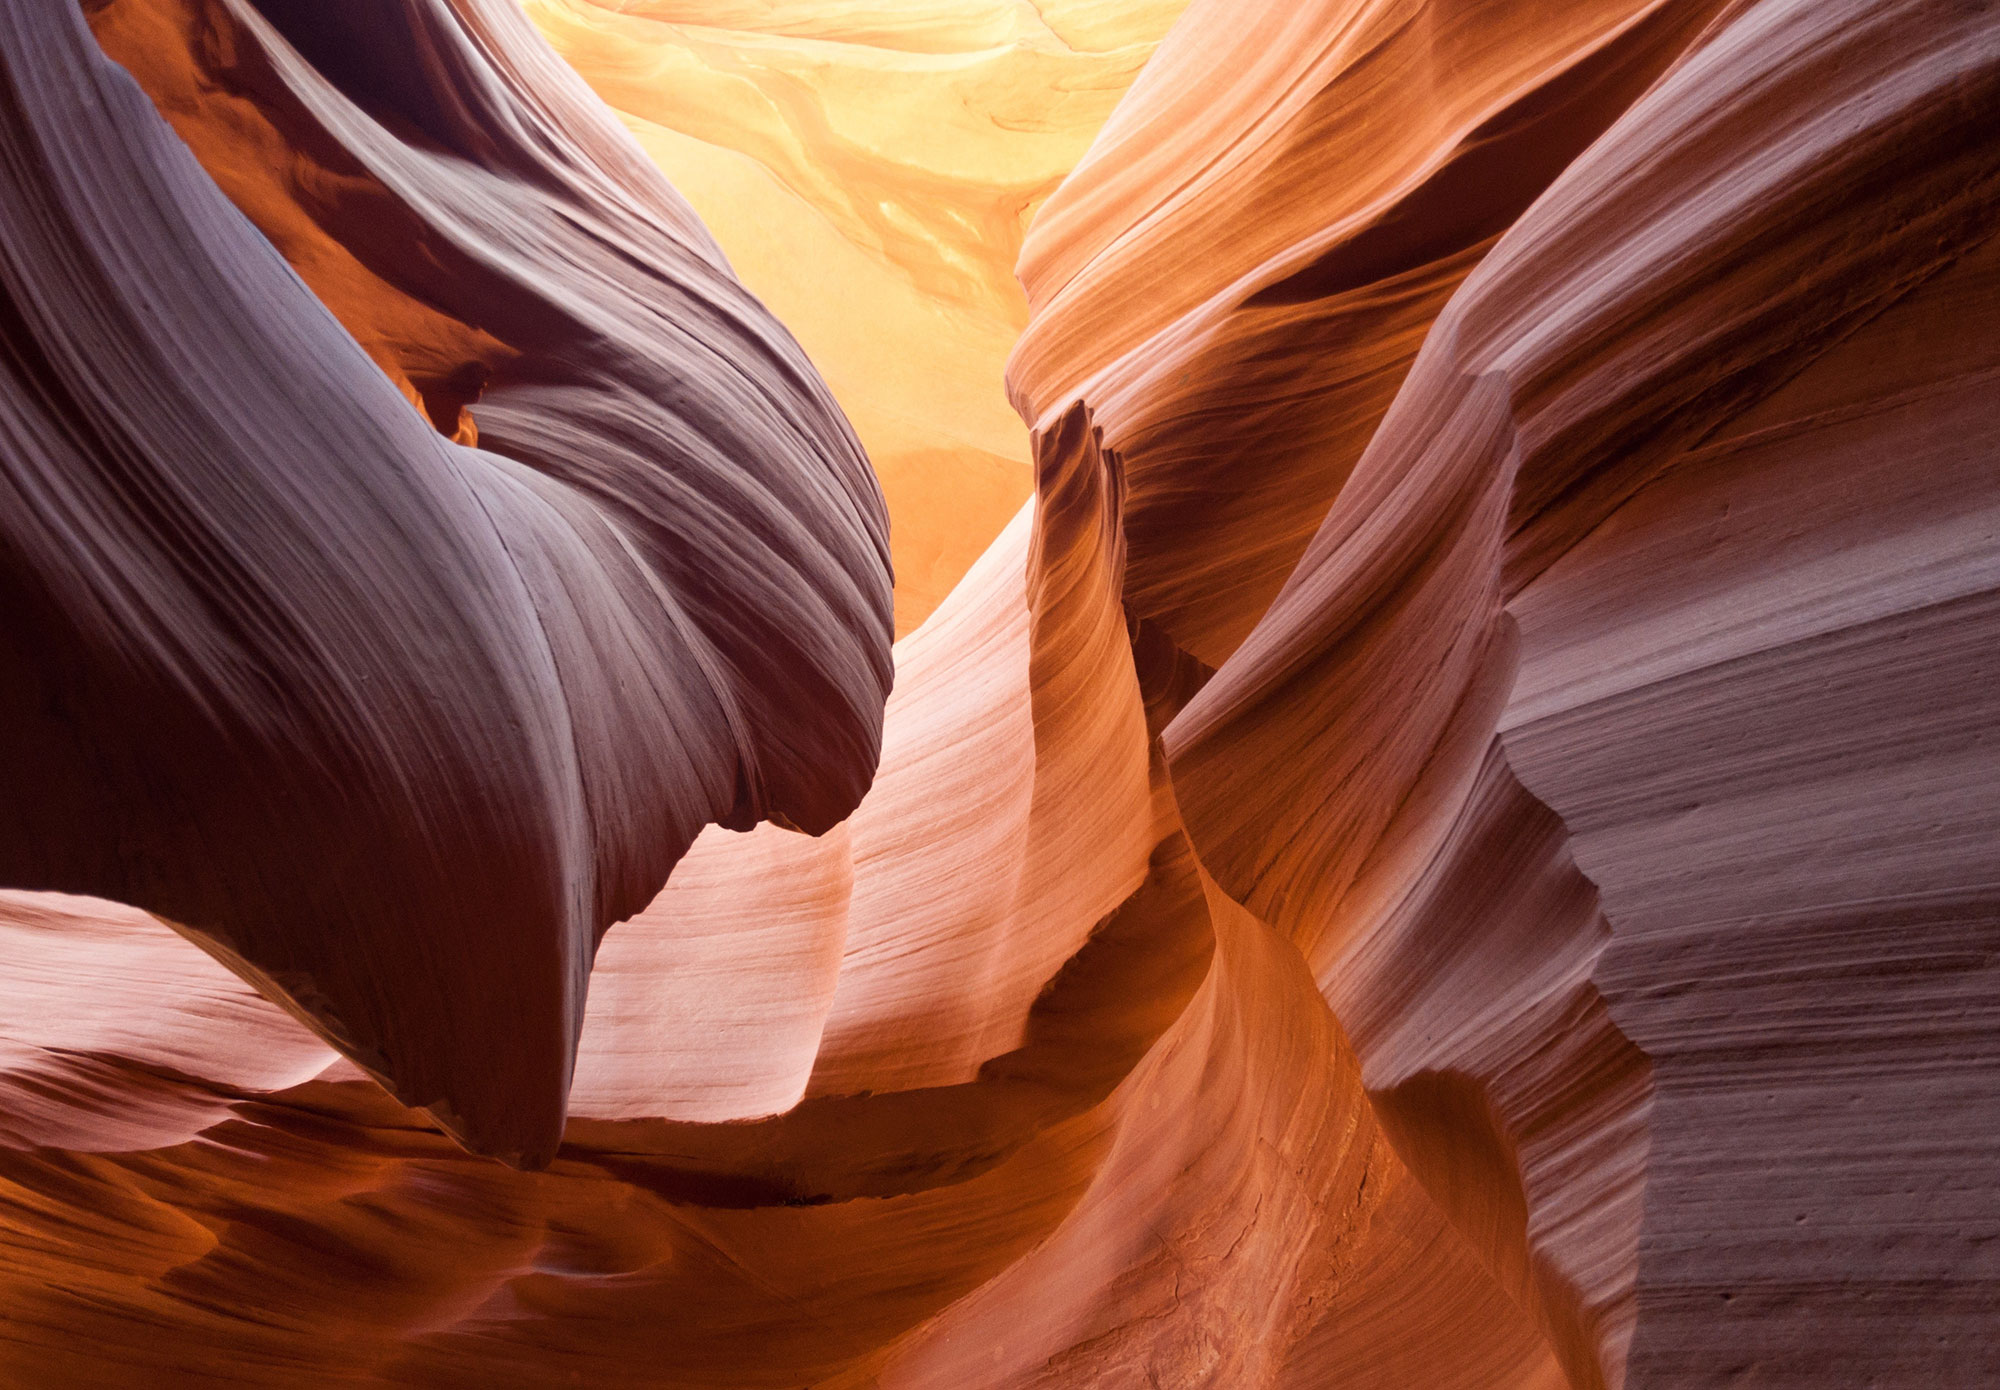 antelope-canyon-arizona-beam-33041